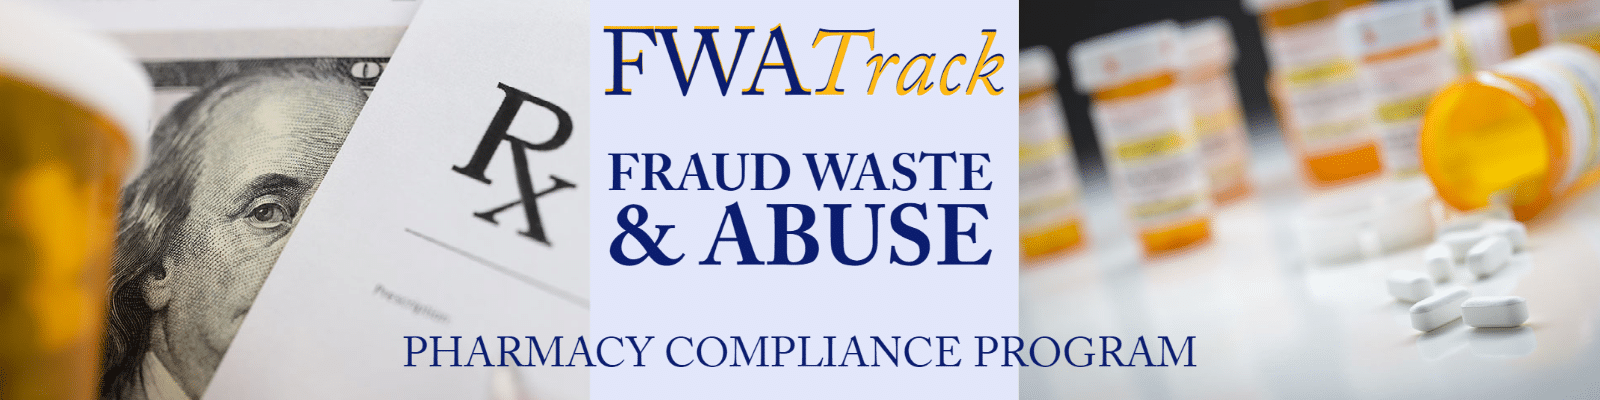 Pharmacy Medicare Fraud waste and abuse, Pharmacy fraud waste and abuse program, pharmacy compliance program, independent pharmacy regulatory compliance